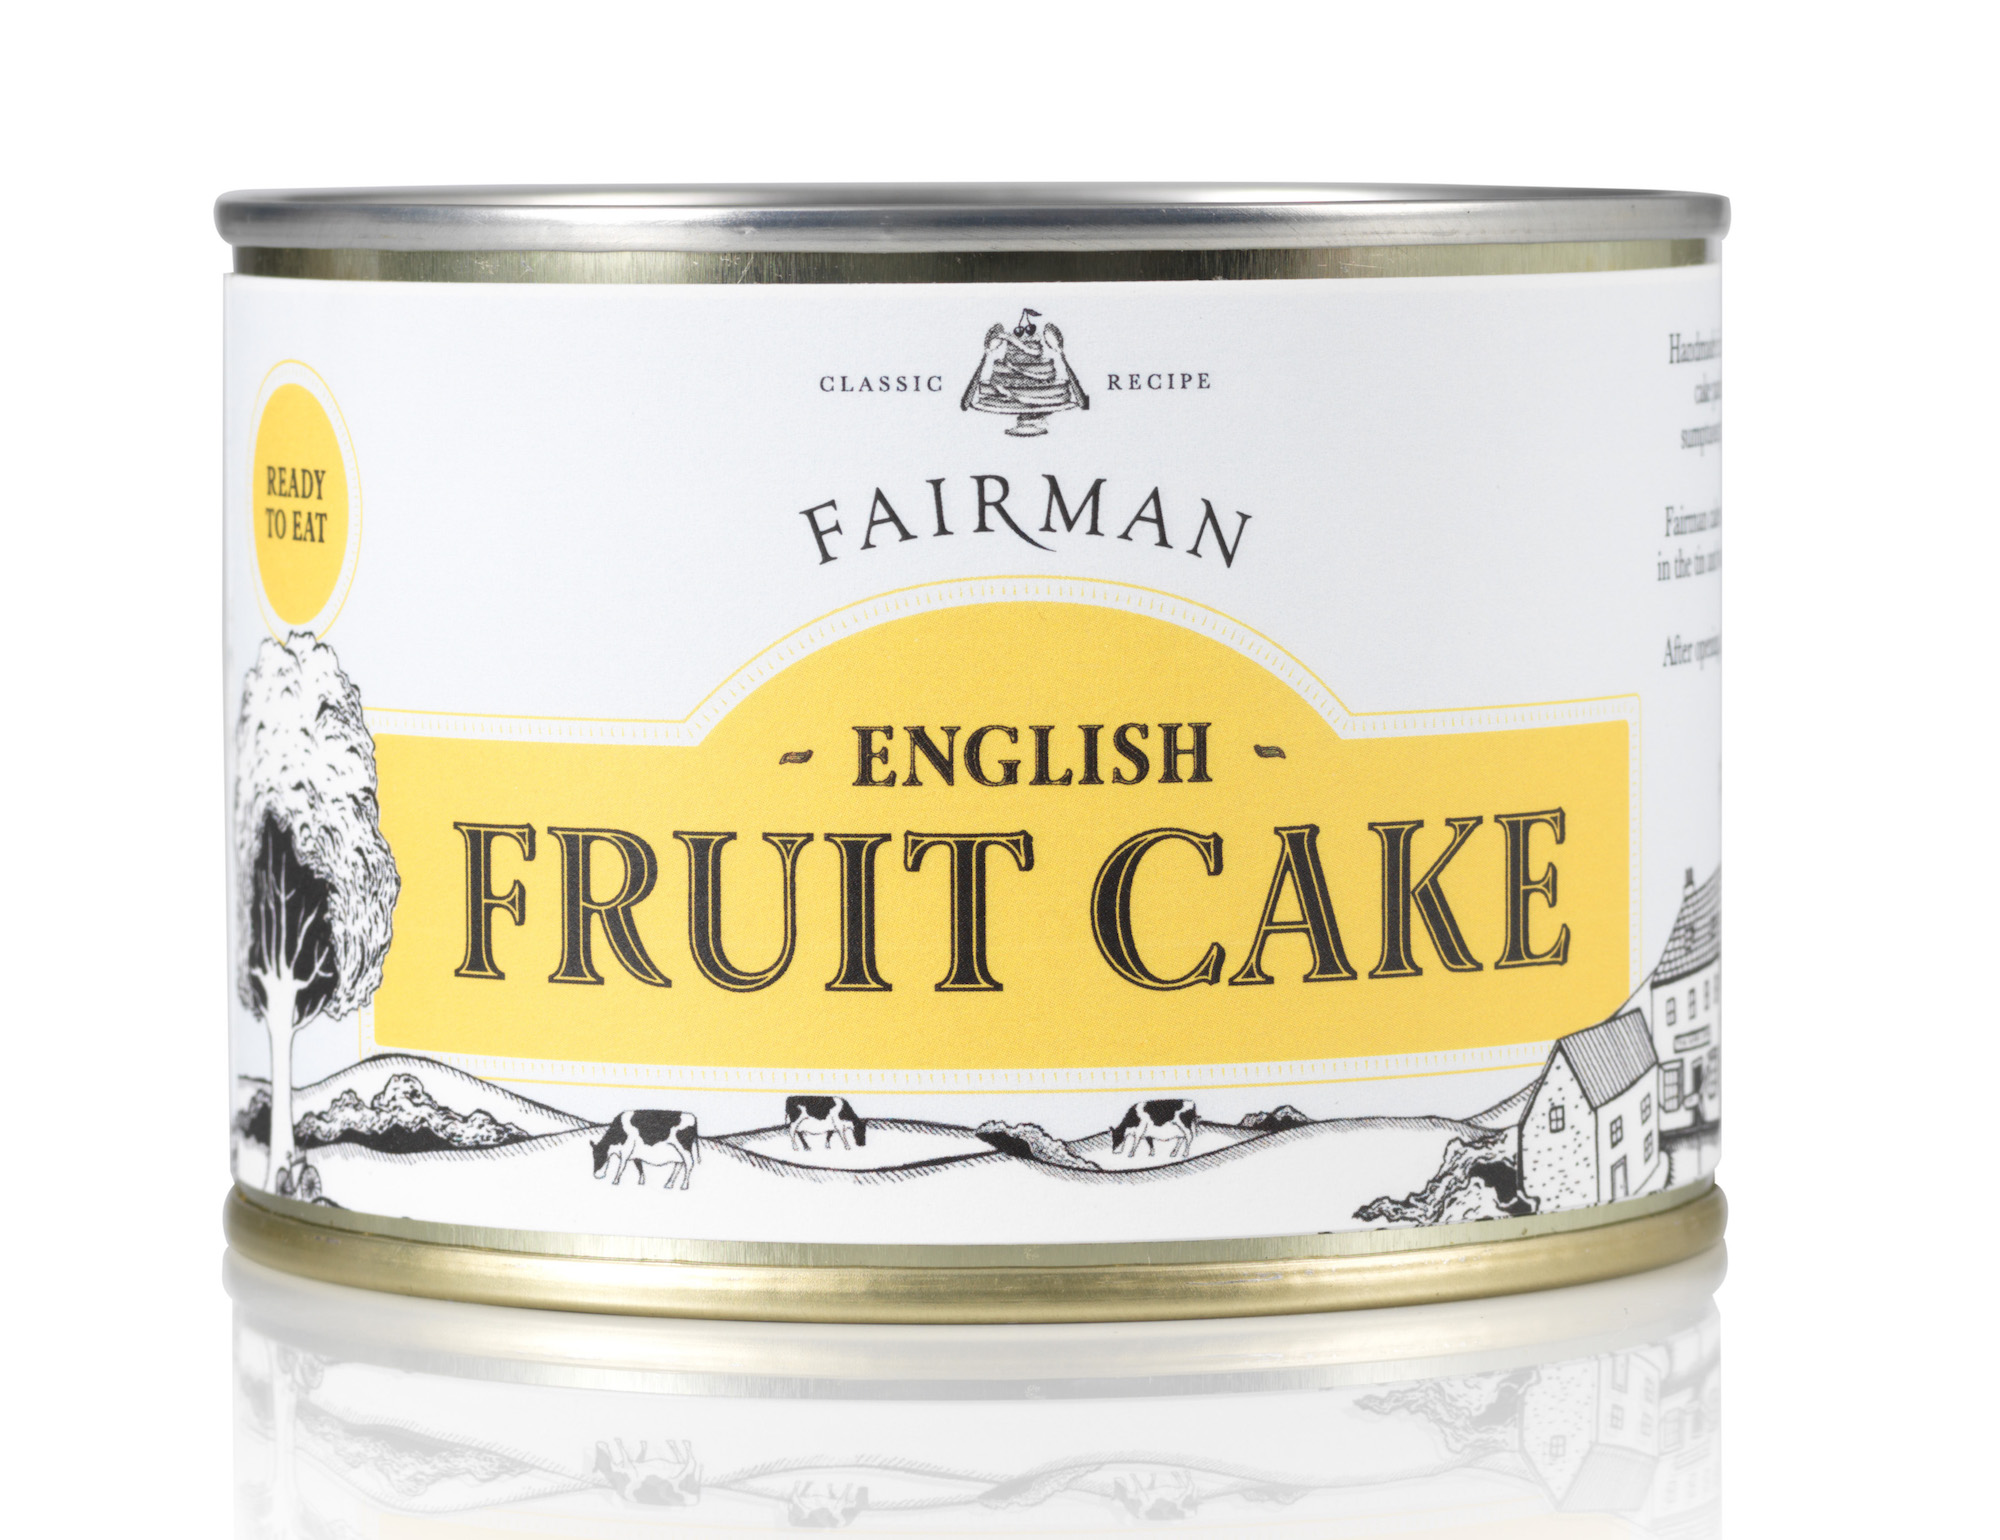 August 2018 - We've shipped Buckingham cakes to China before but we have now registered 'Fairman' as our trademark in China. This month sees our first shipment of 'Fairman' fruit cakes leave the UK destined for our distributor in Beijing. There'll be more news on this later in the year.